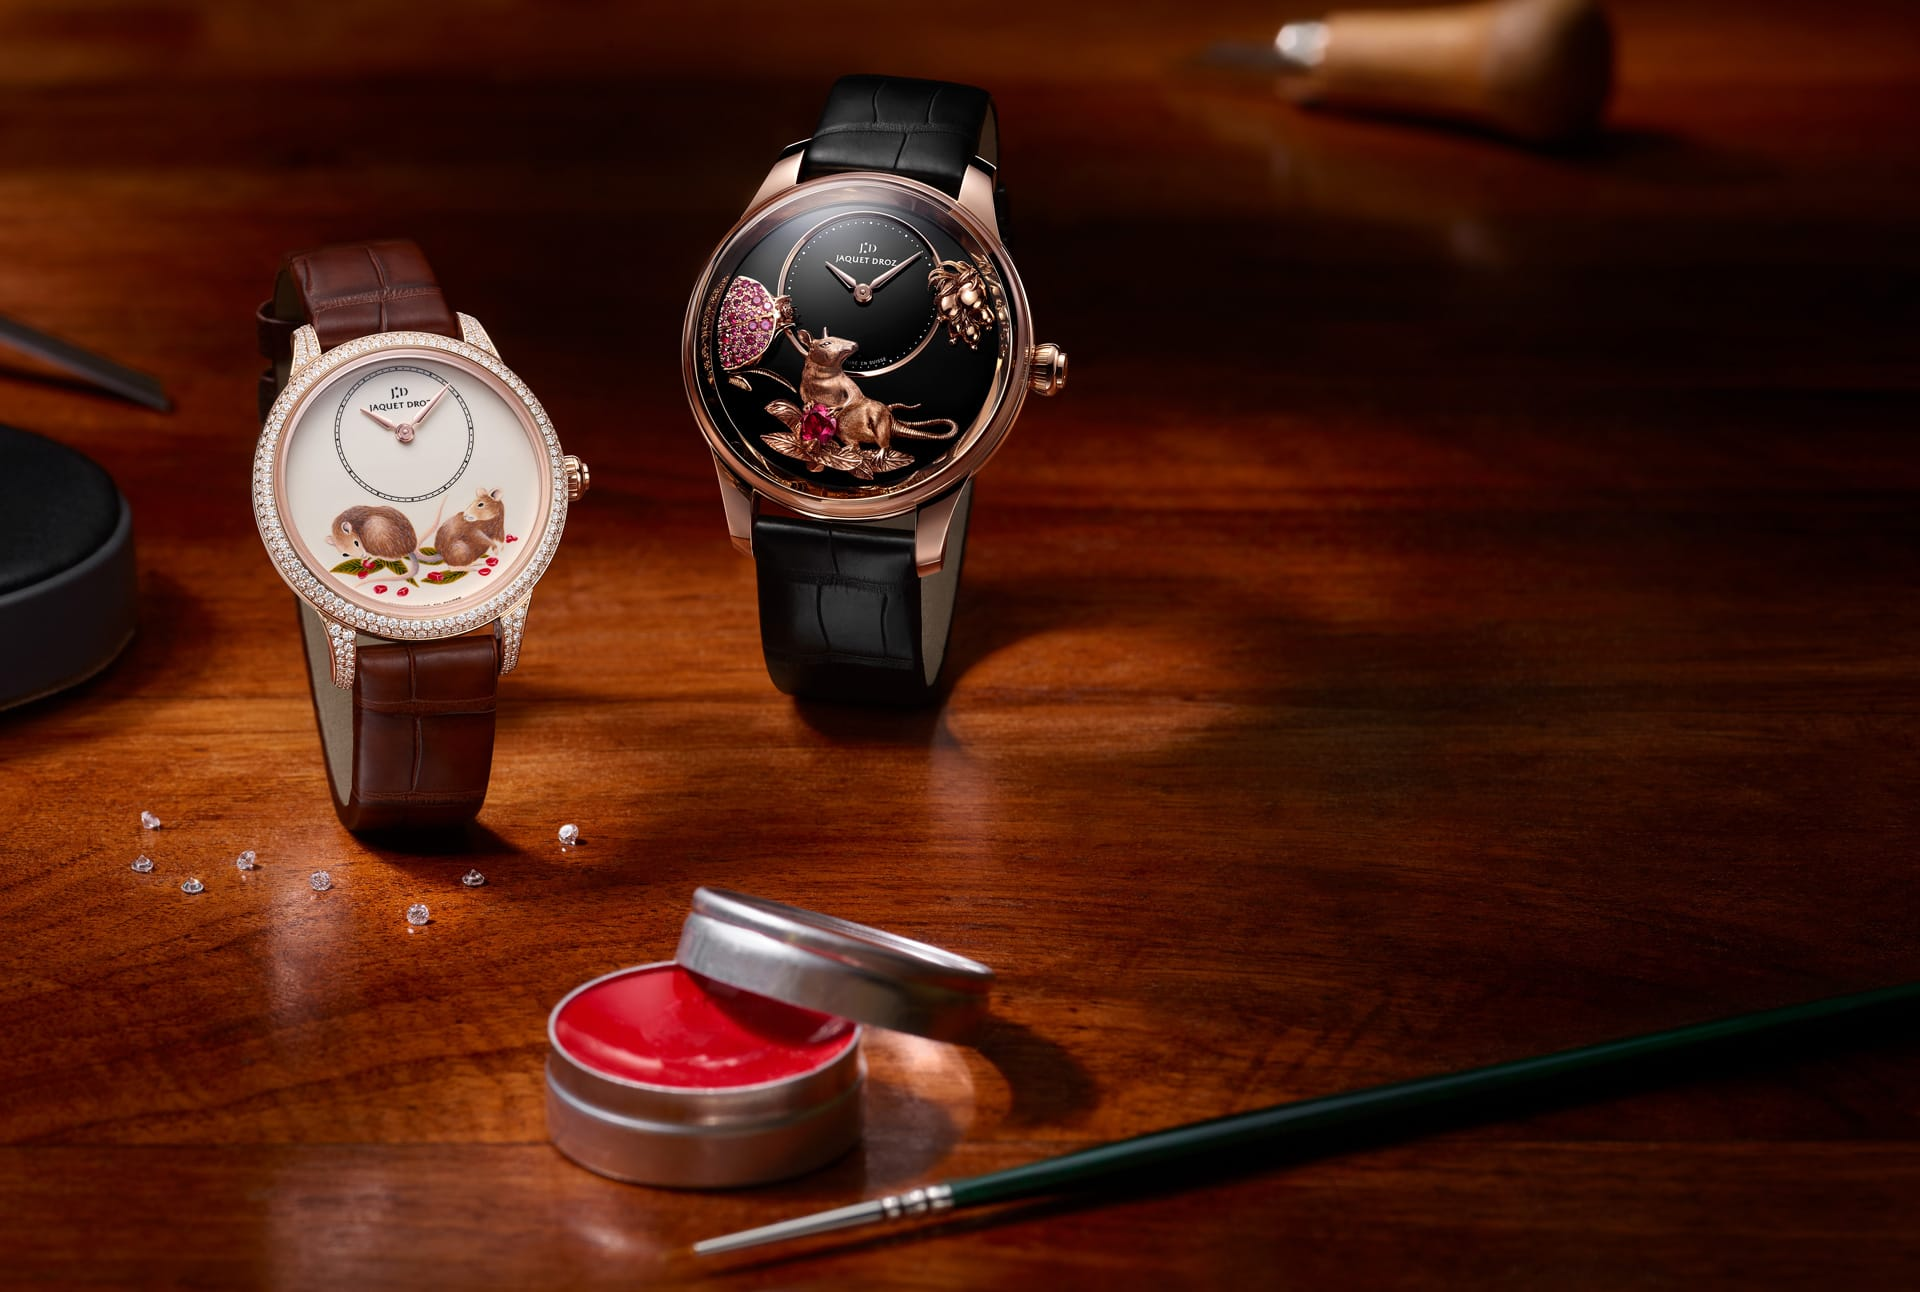 Jaquet Droz - The Year of the Rat